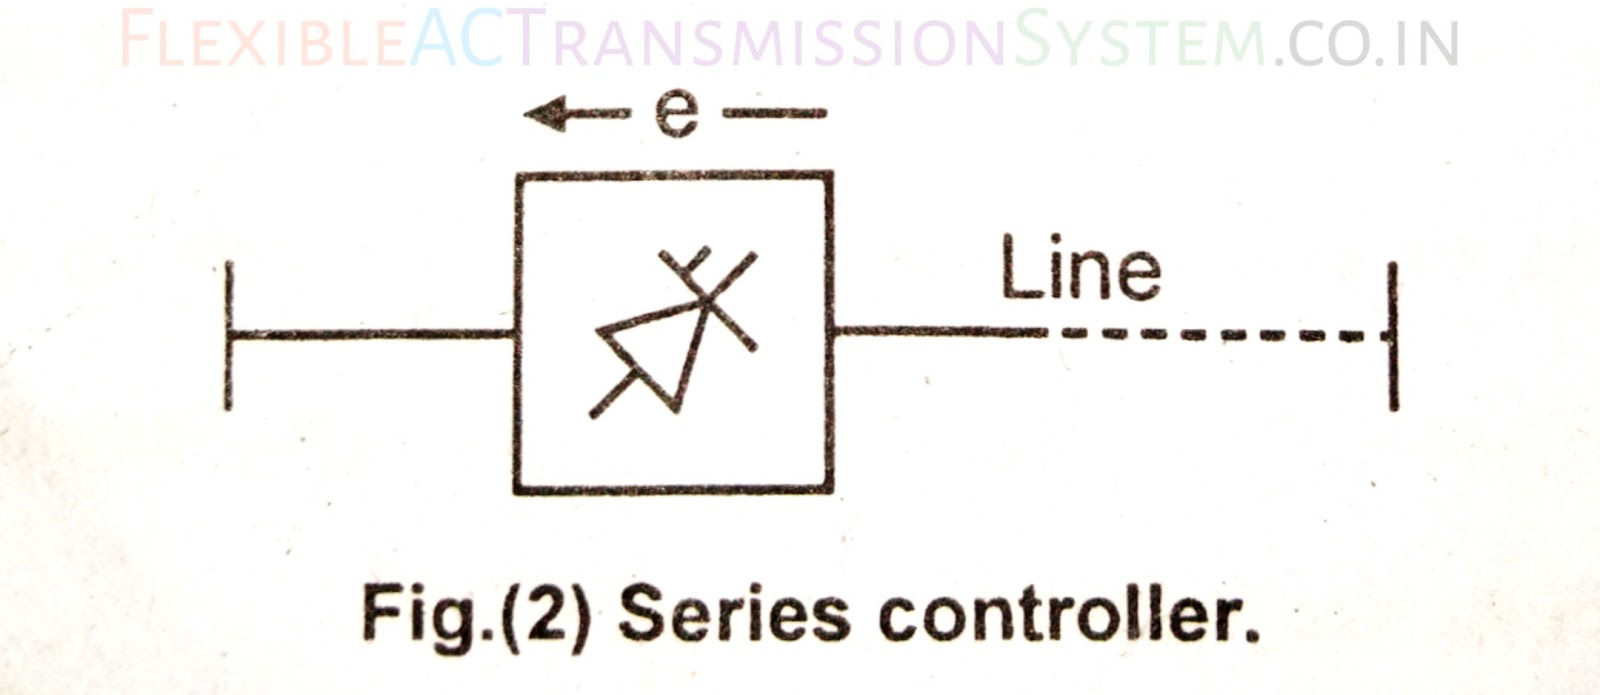 hight resolution of the series controller could be a variable impedance such as a capacitor reactor etc or a power electronics based variable source of main frequency